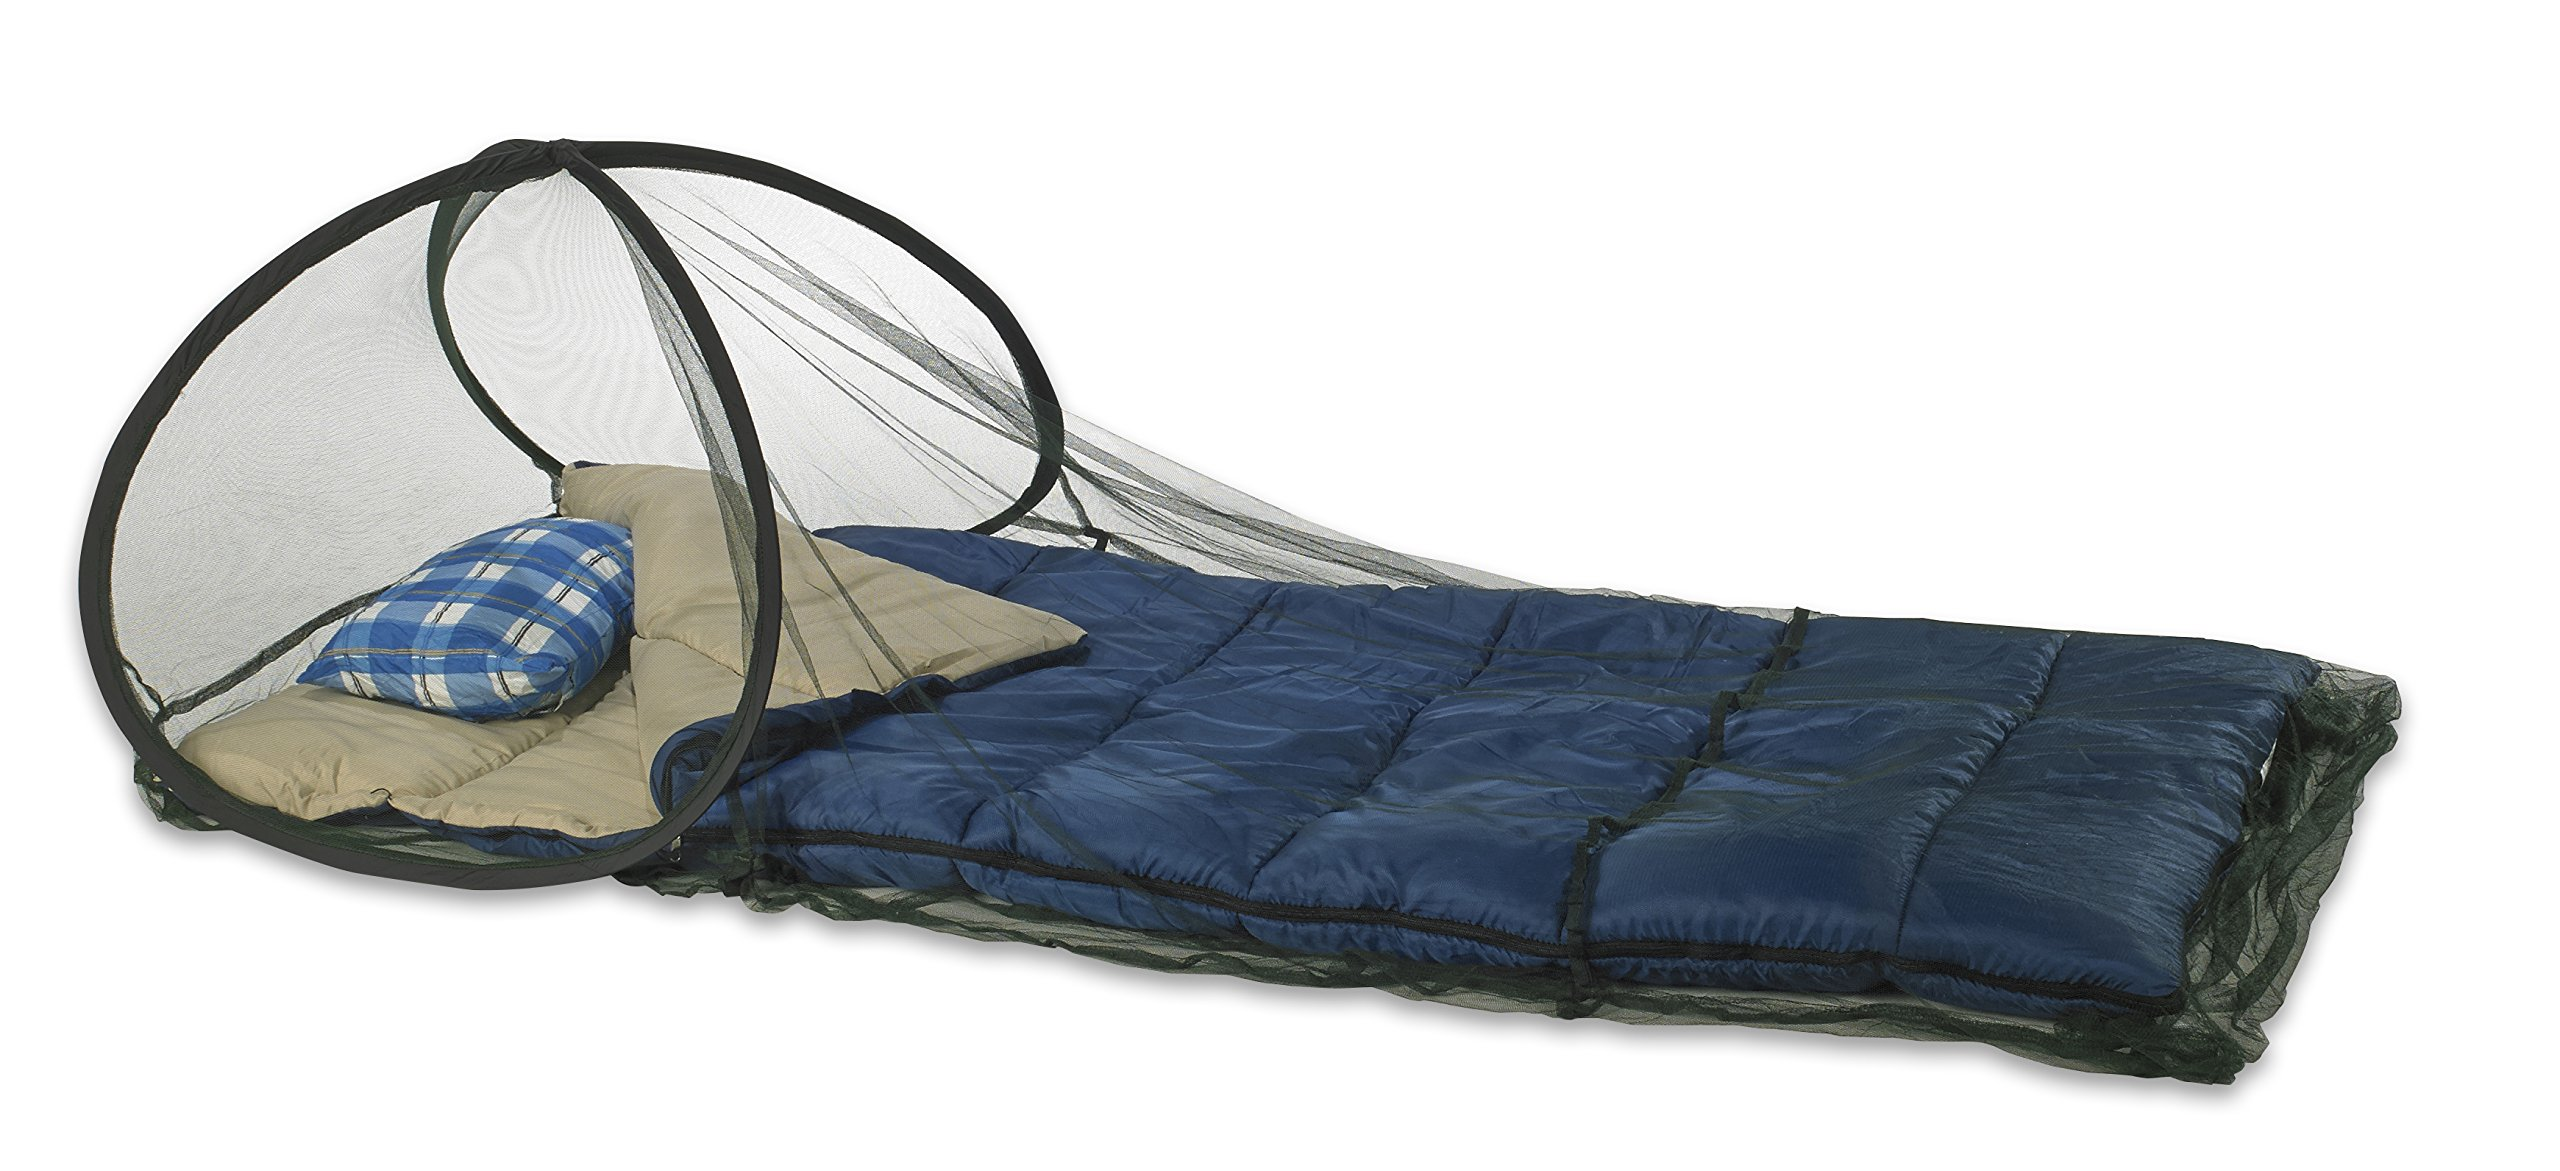 Atwater Carey Mosquito Net Treated with Insect Shield Permethrin Bug Repellent, Pop-up Screen Ideal for Sleeping Bags by Atwater Carey